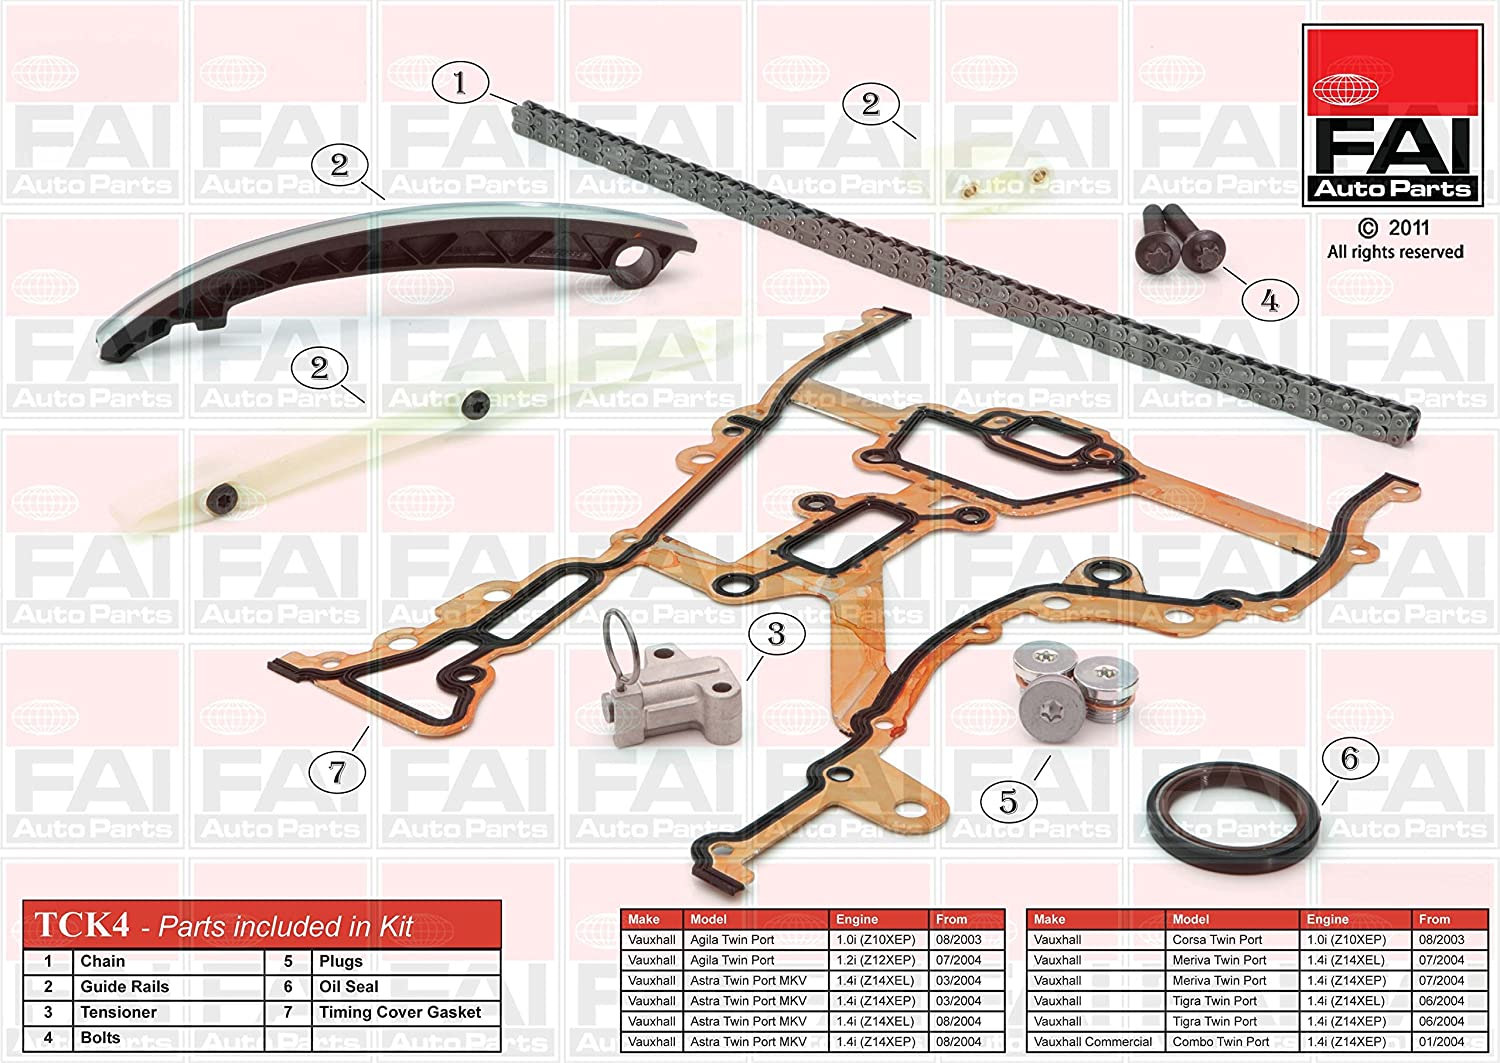 FAI Autoparts tck4Â   catena di distribuzione Kit